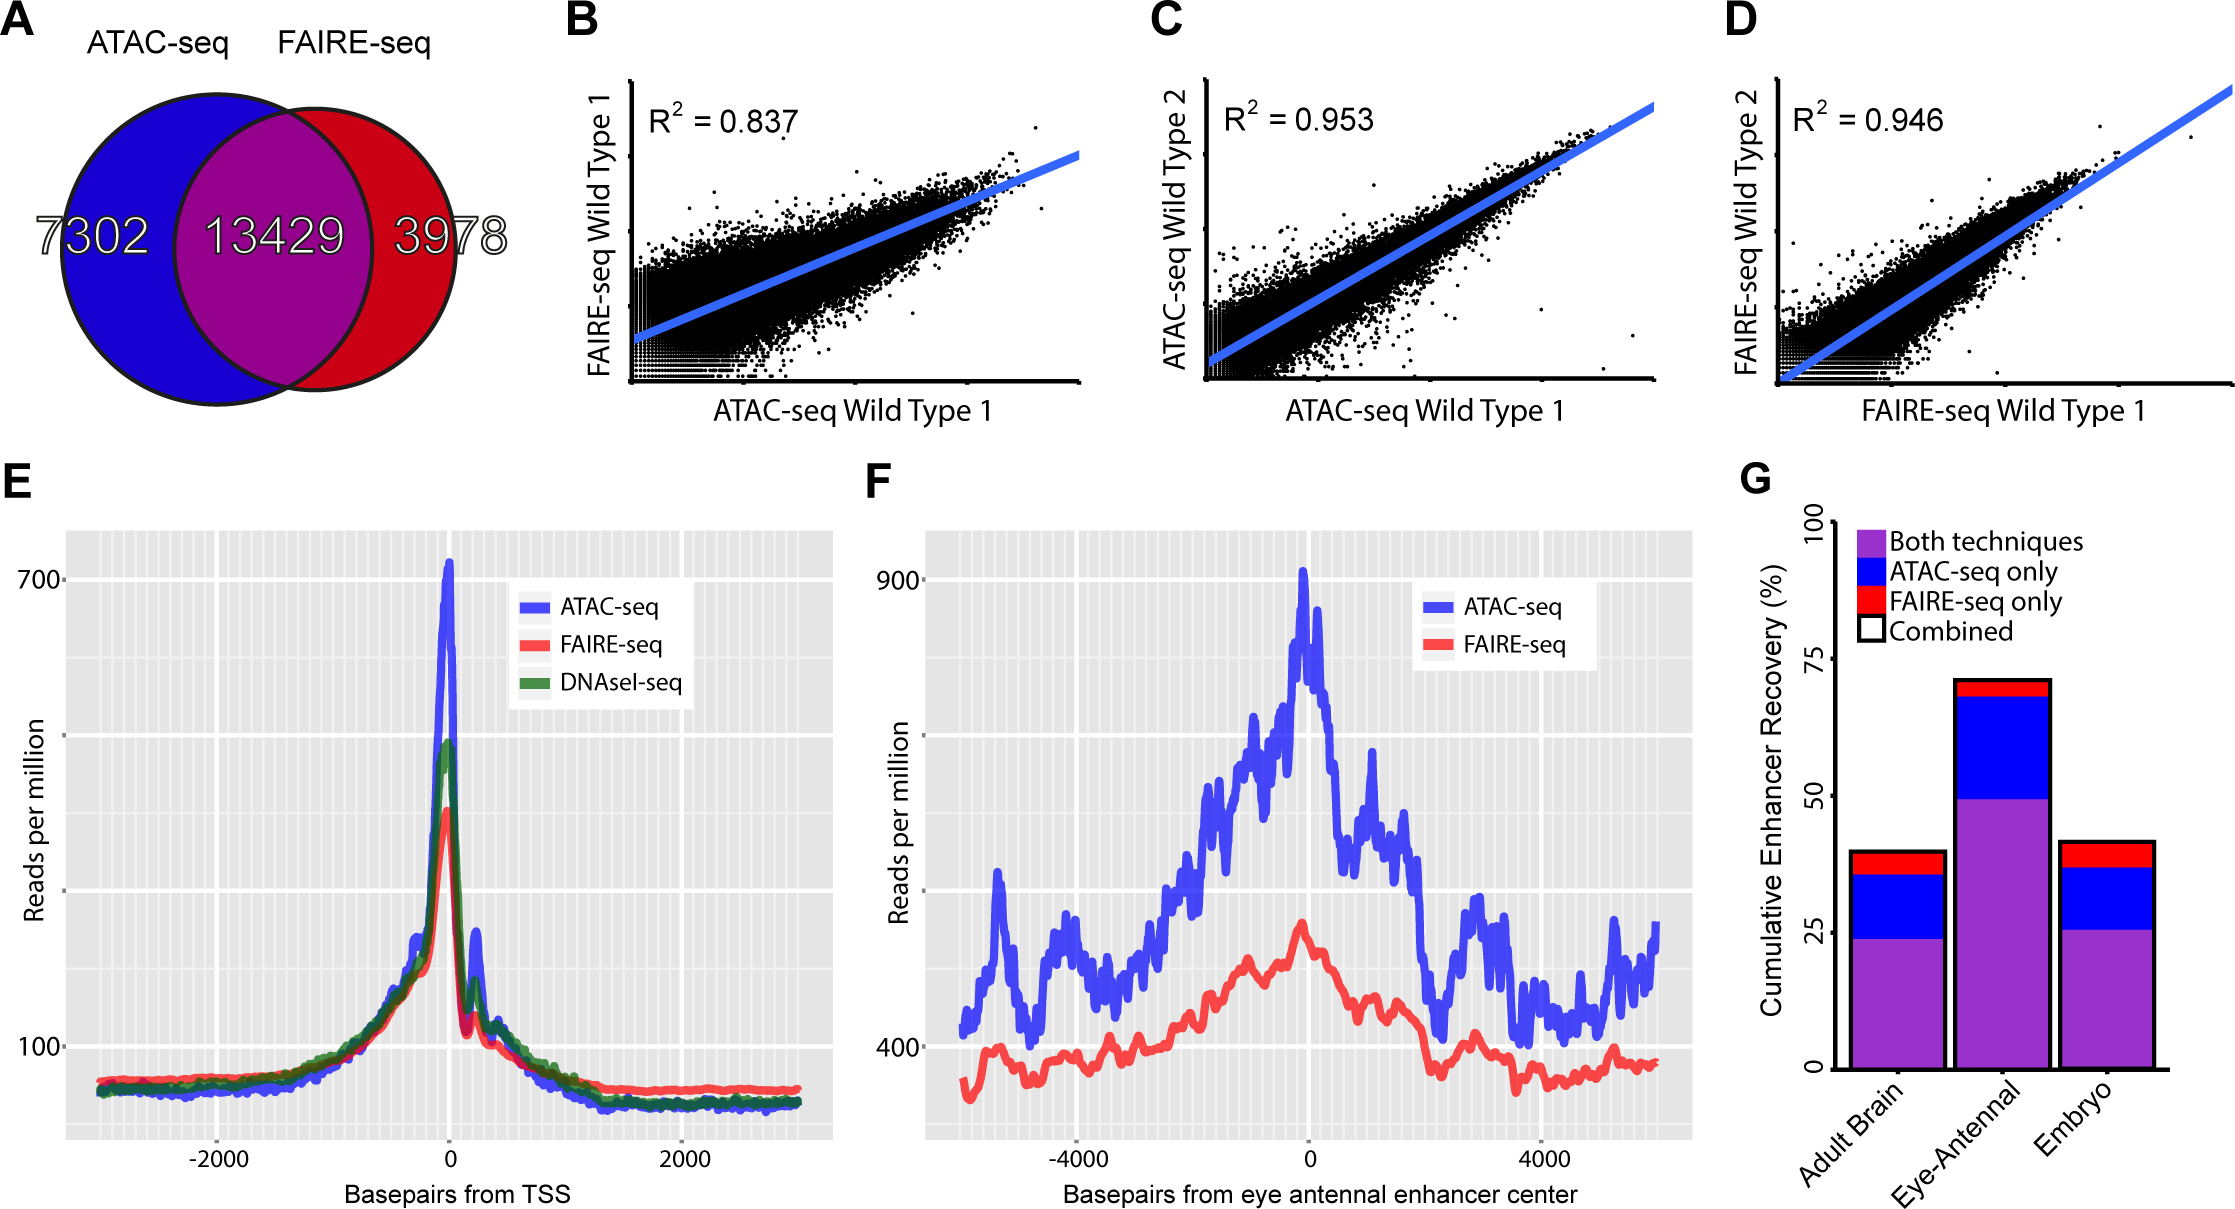 Comparing general features of ATAC-seq and FAIRE-seq.